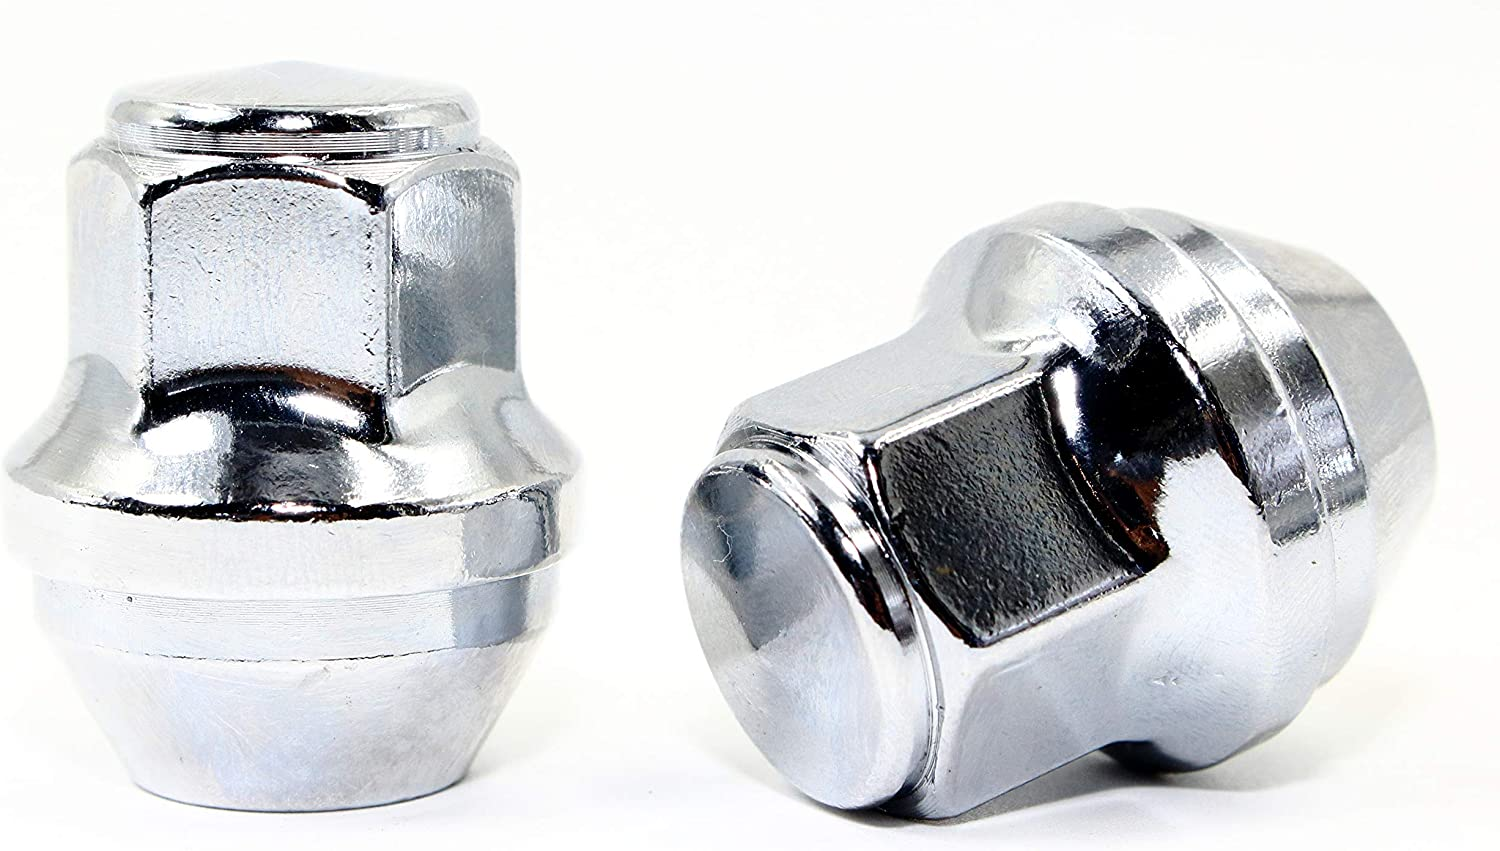 Set of 20 Veritek 14x1.5mm 13//16 21mm Hex 1.5 Inch 38.5mm Length Chrome OEM Factory Style Large Acorn Seat Lug Nuts for Ford Mustang Edge Fusion Lincoln Factory Wheels Replaces ACPZ1012D